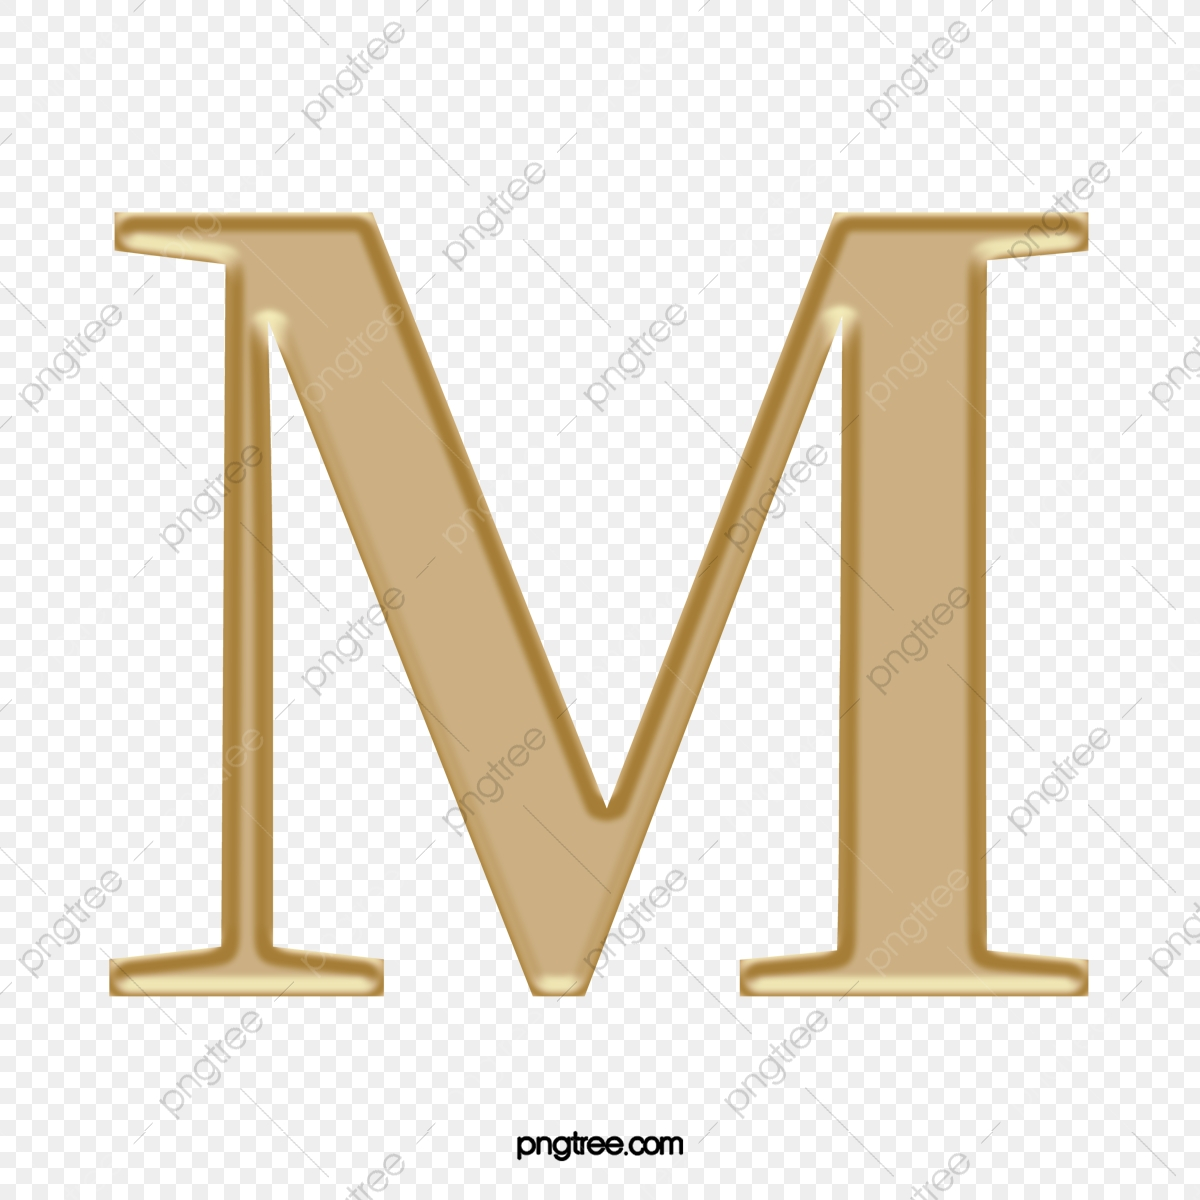 Decorative letter a decorative letter m free clipart svg transparent library Letter M Monogram Clipart Objects Free Words Black And White ... svg transparent library